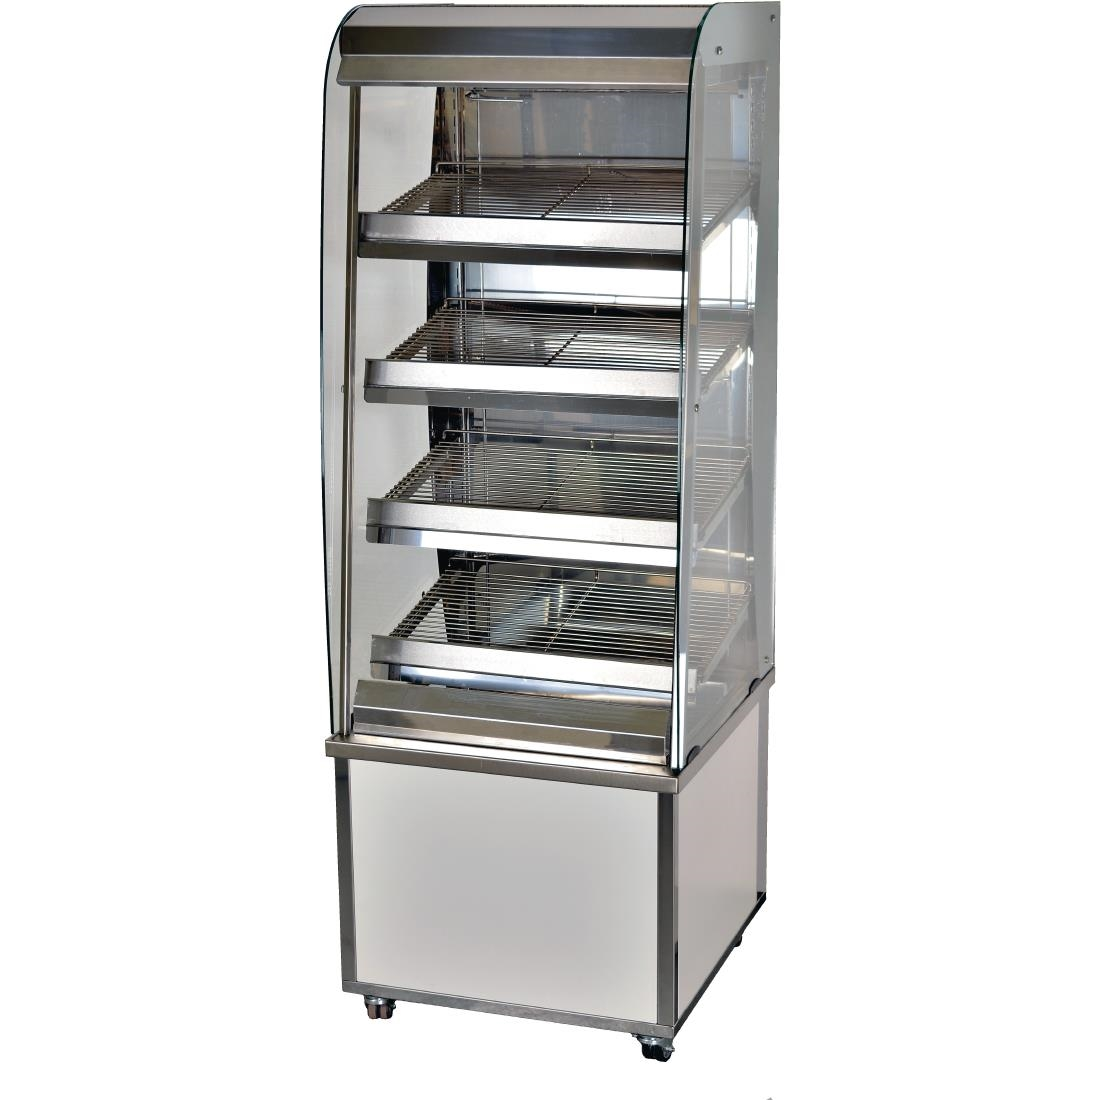 Image of Moffat Ambient Food Display Multideck Merchandiser MA1